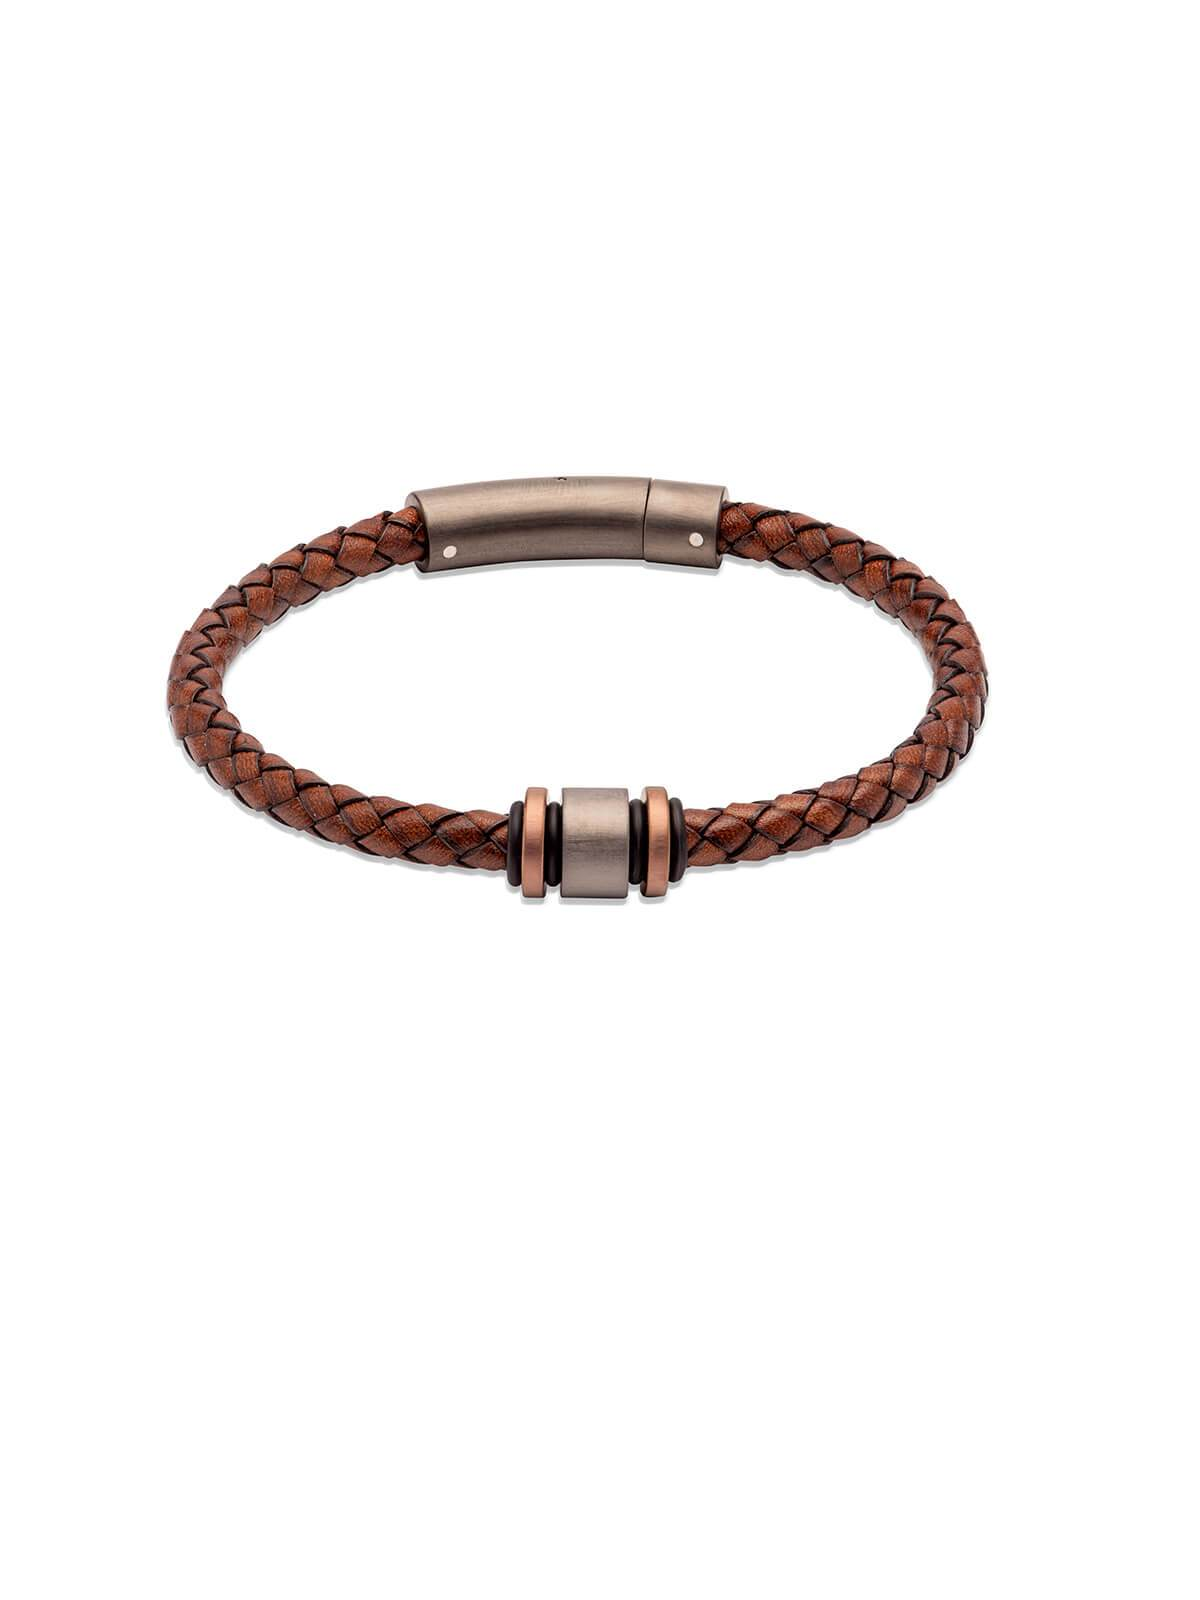 B457ADB/21CM Unique & Co. 21cm Antique Dark Brown Leather Bracelet with Matte & Polished Steel Clasp